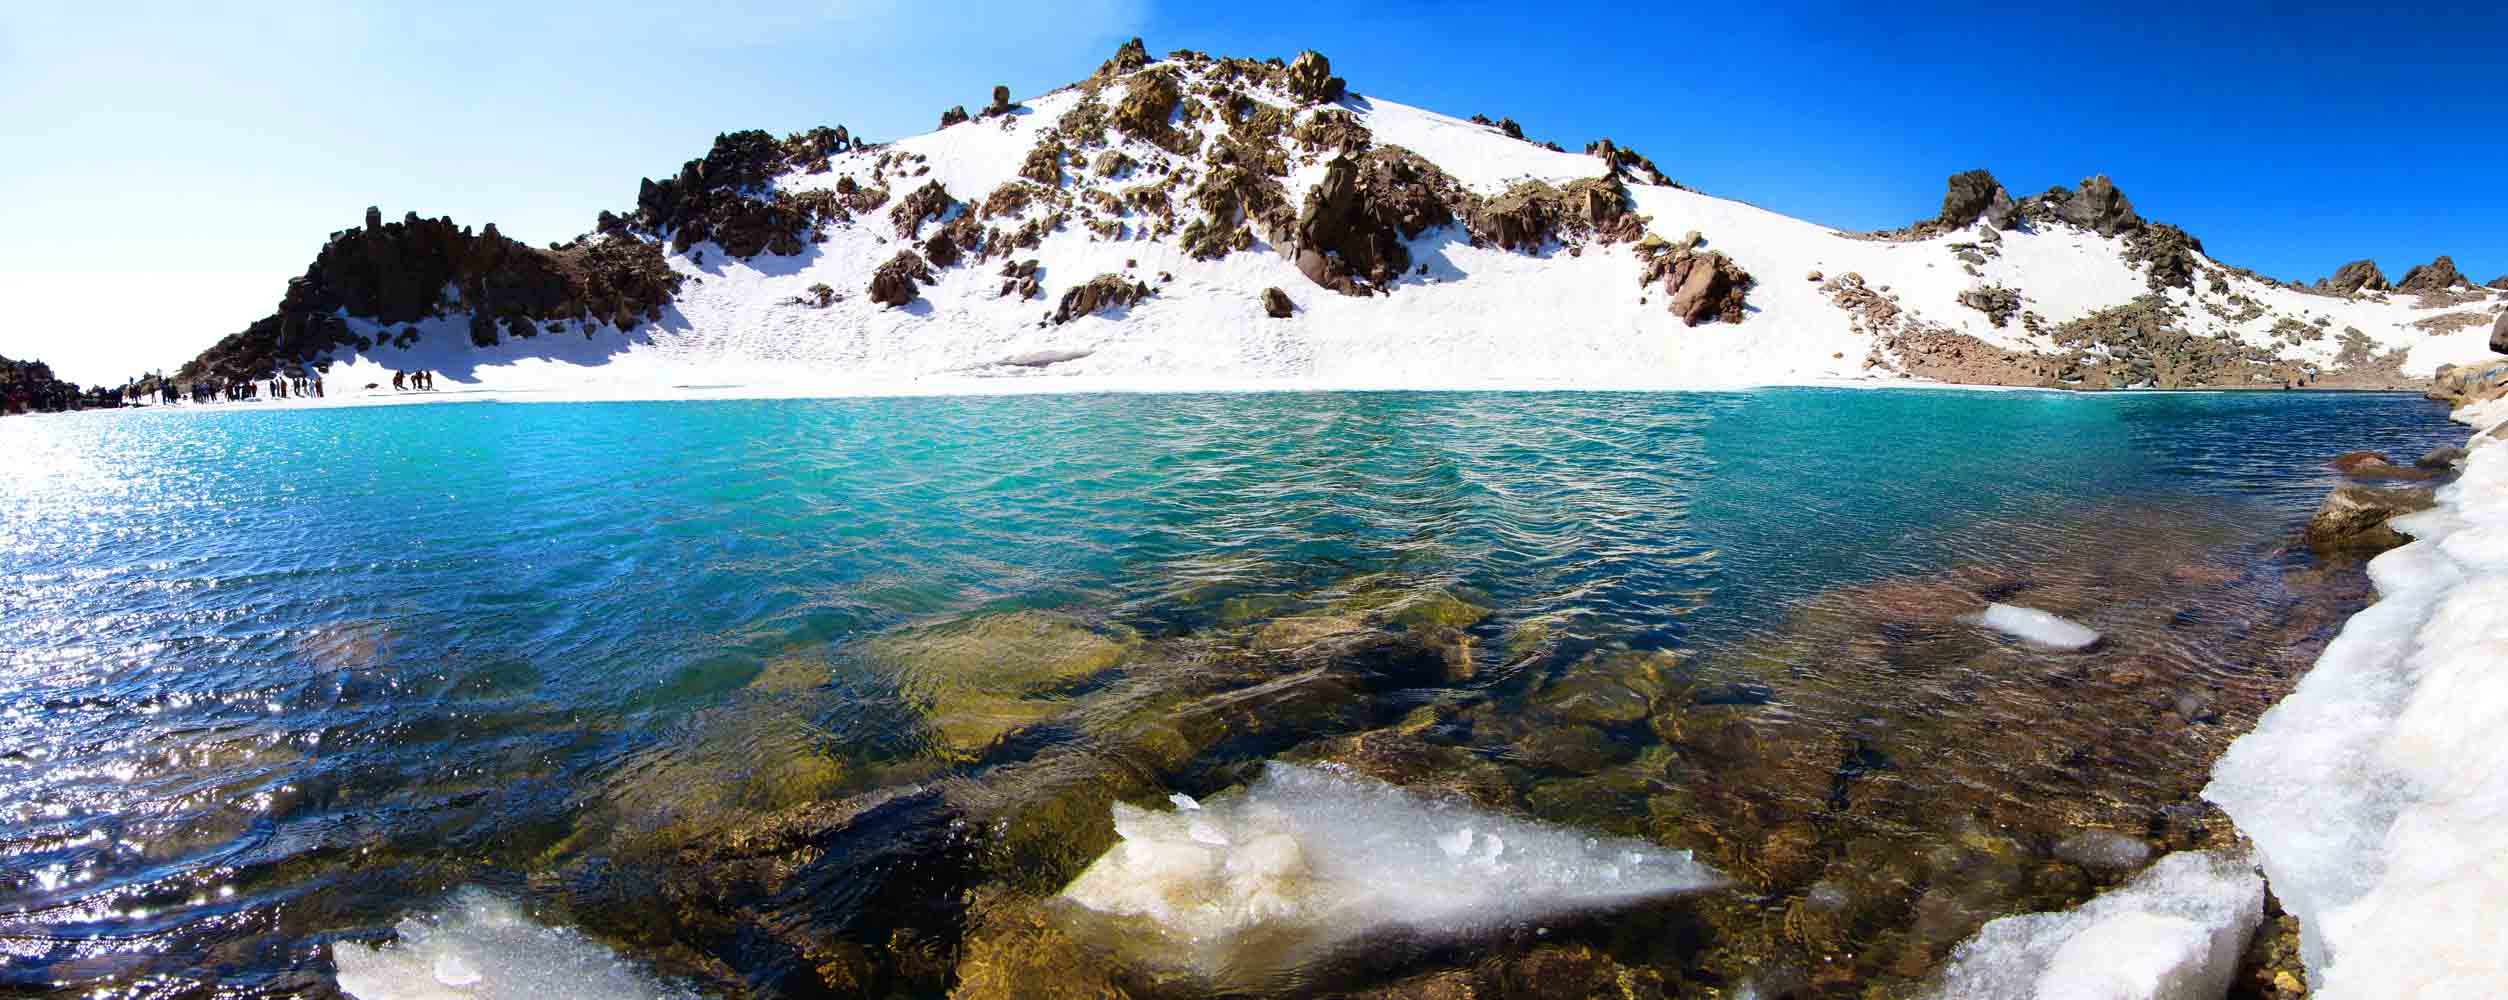 Mt Sabalan lake,